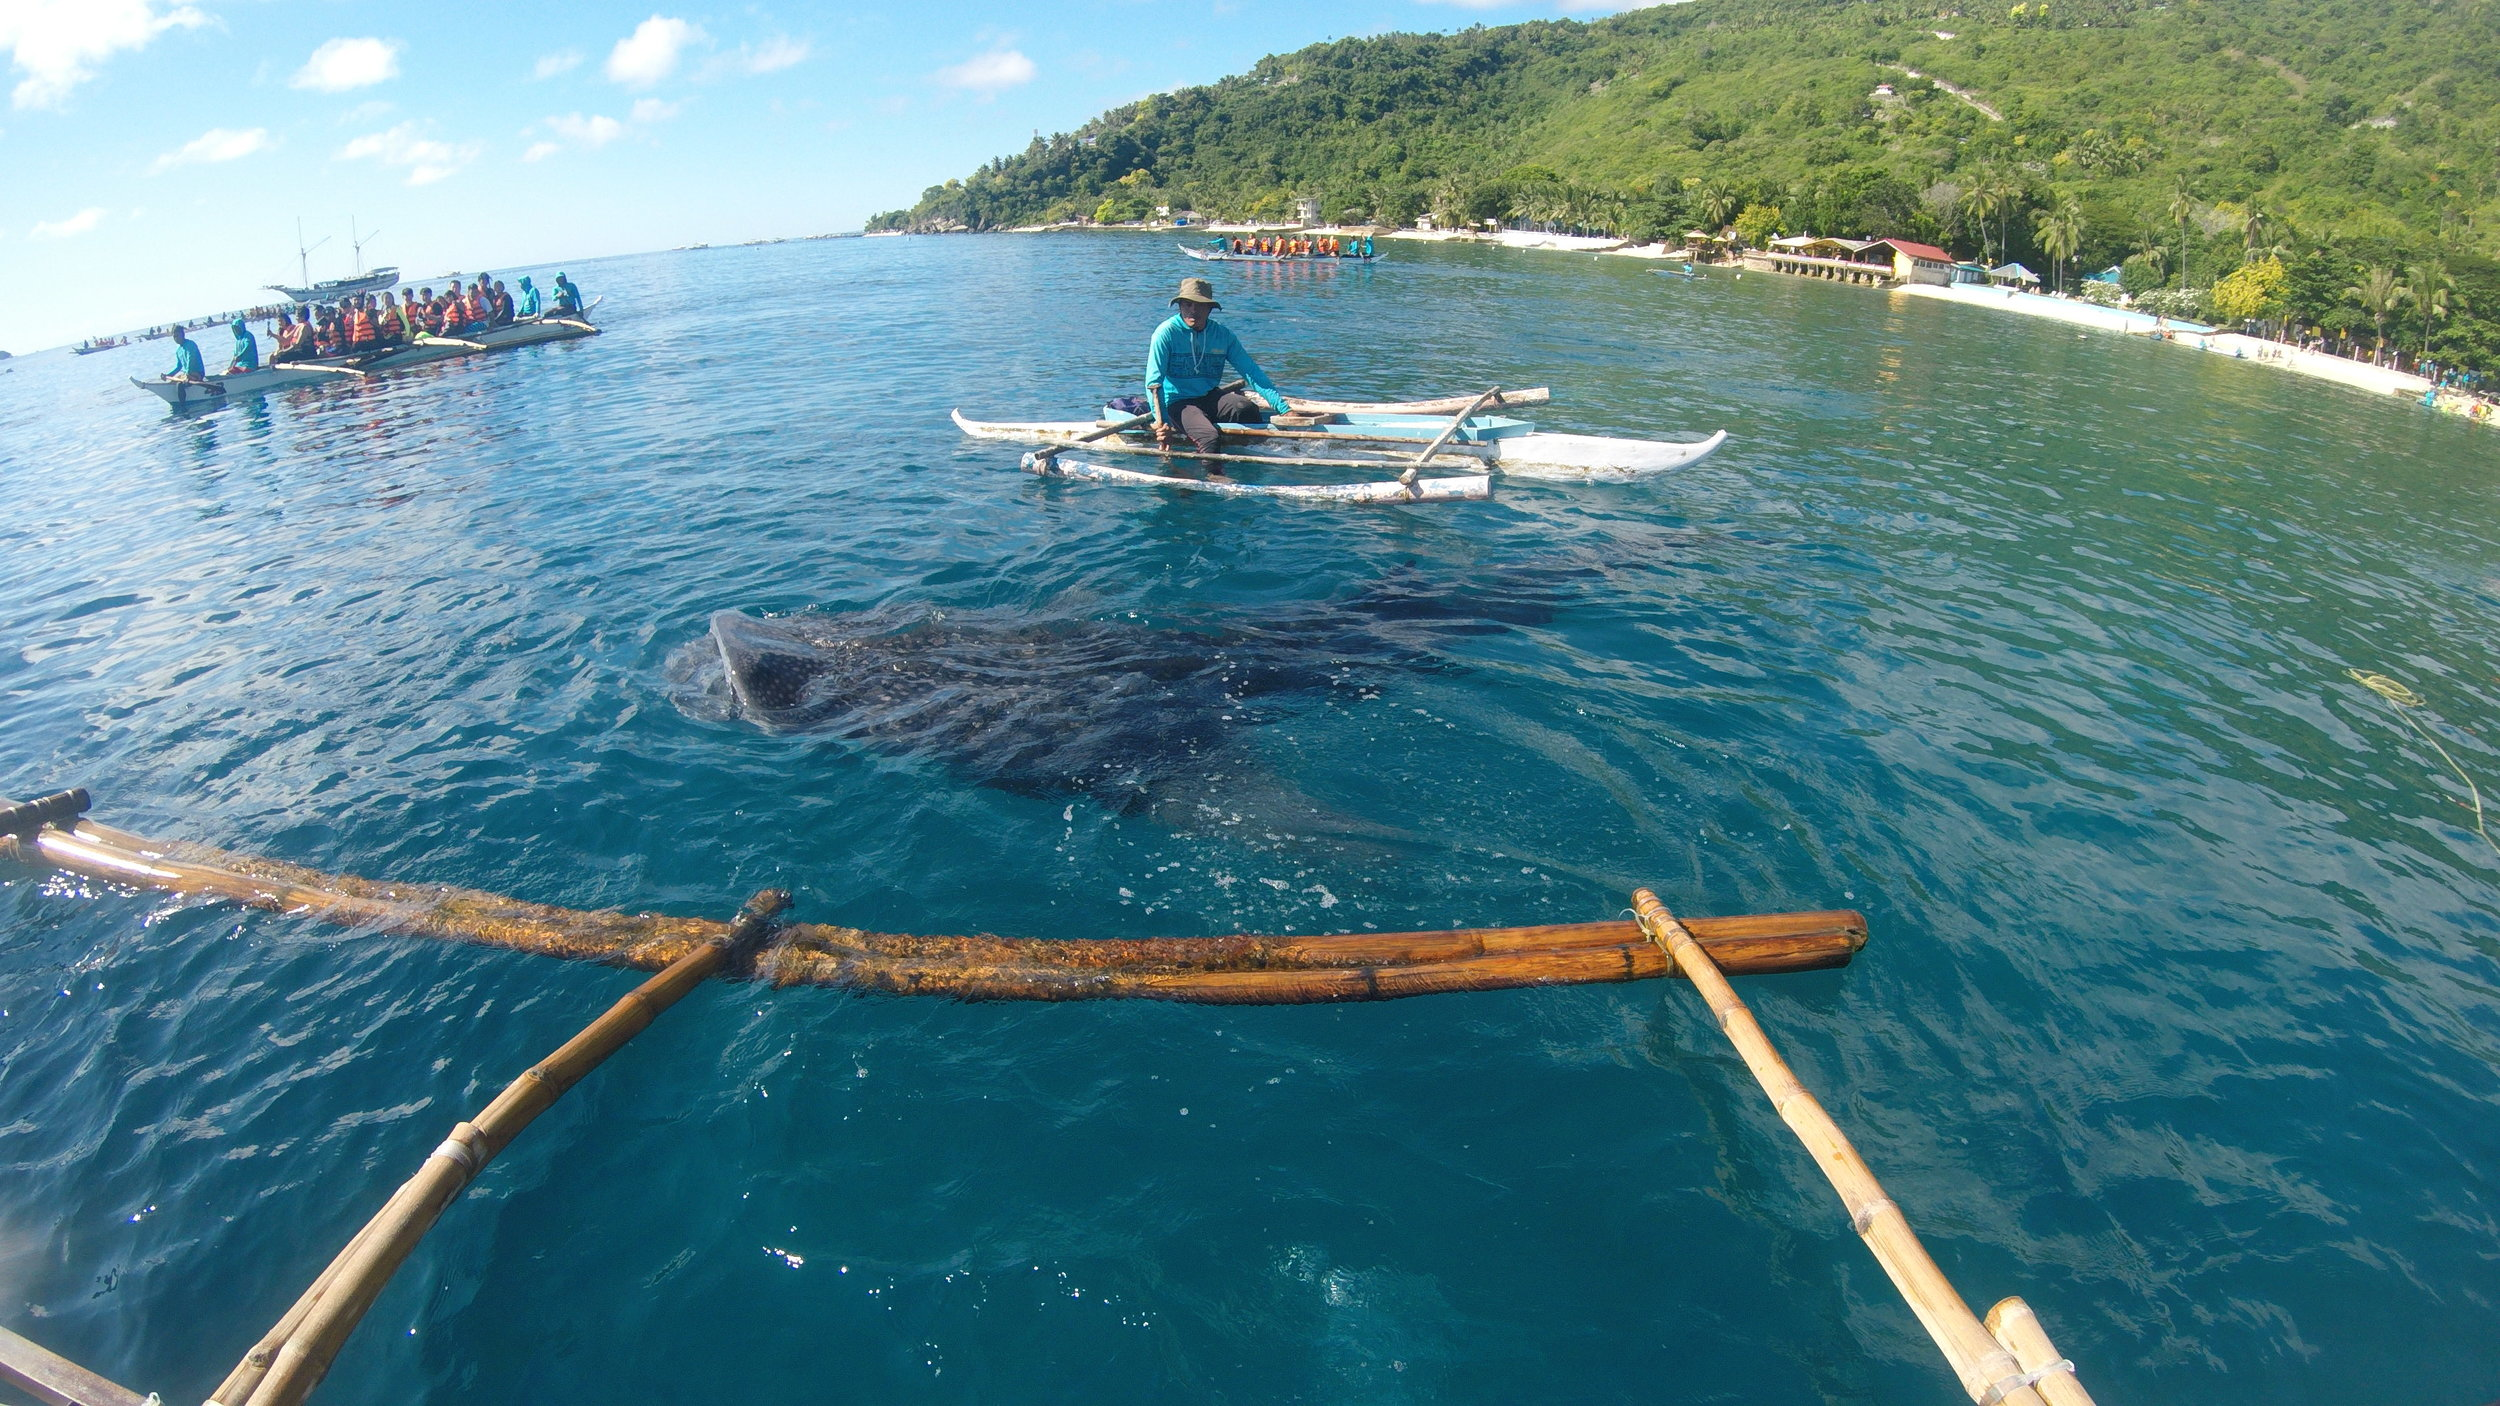 snorkeling alongside whale sharks, don't worry they are friendly